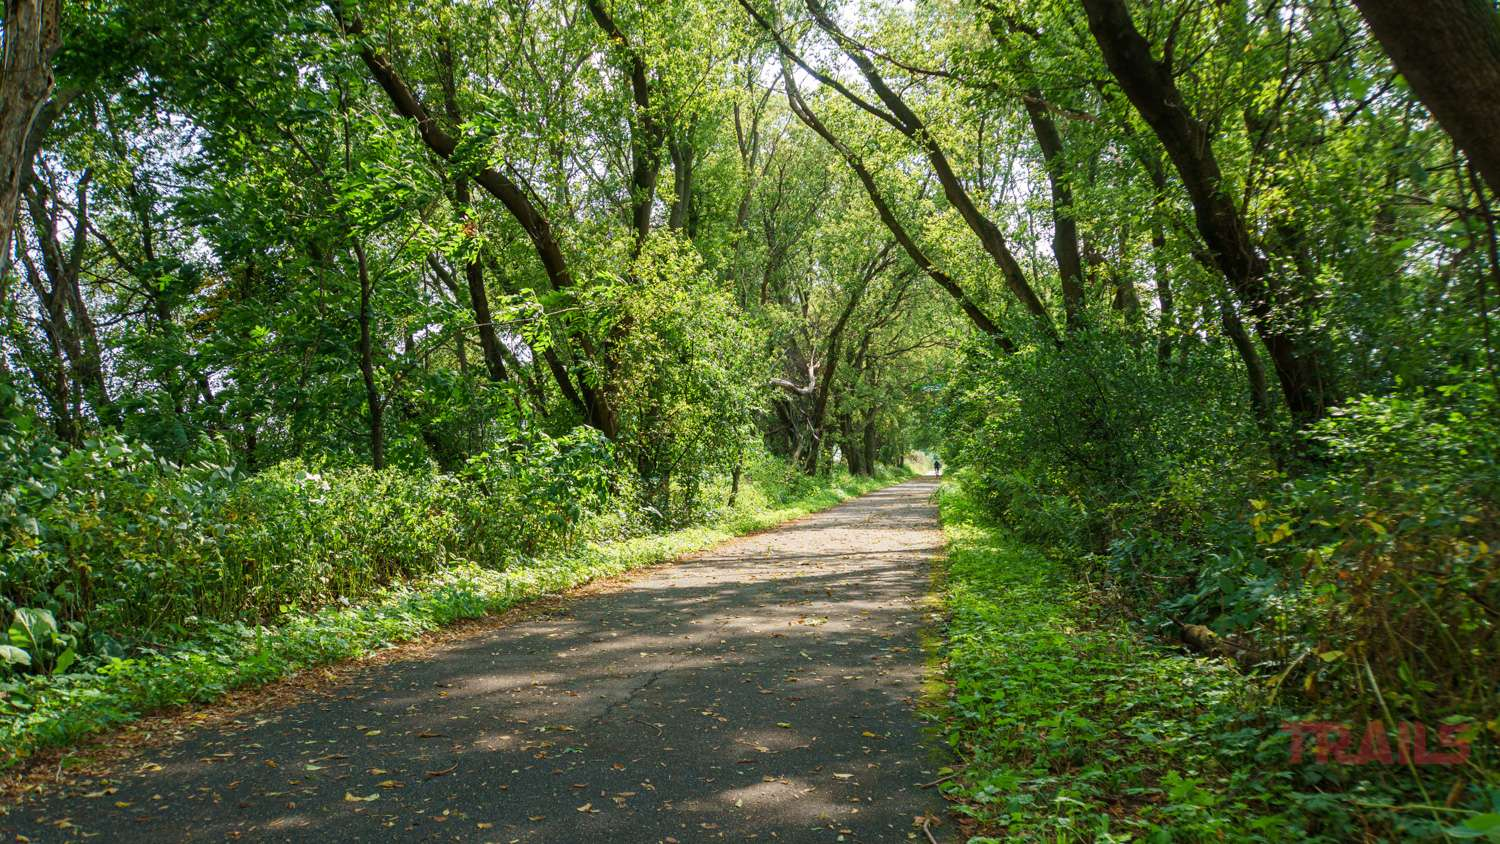 A paved trail flanked by trees